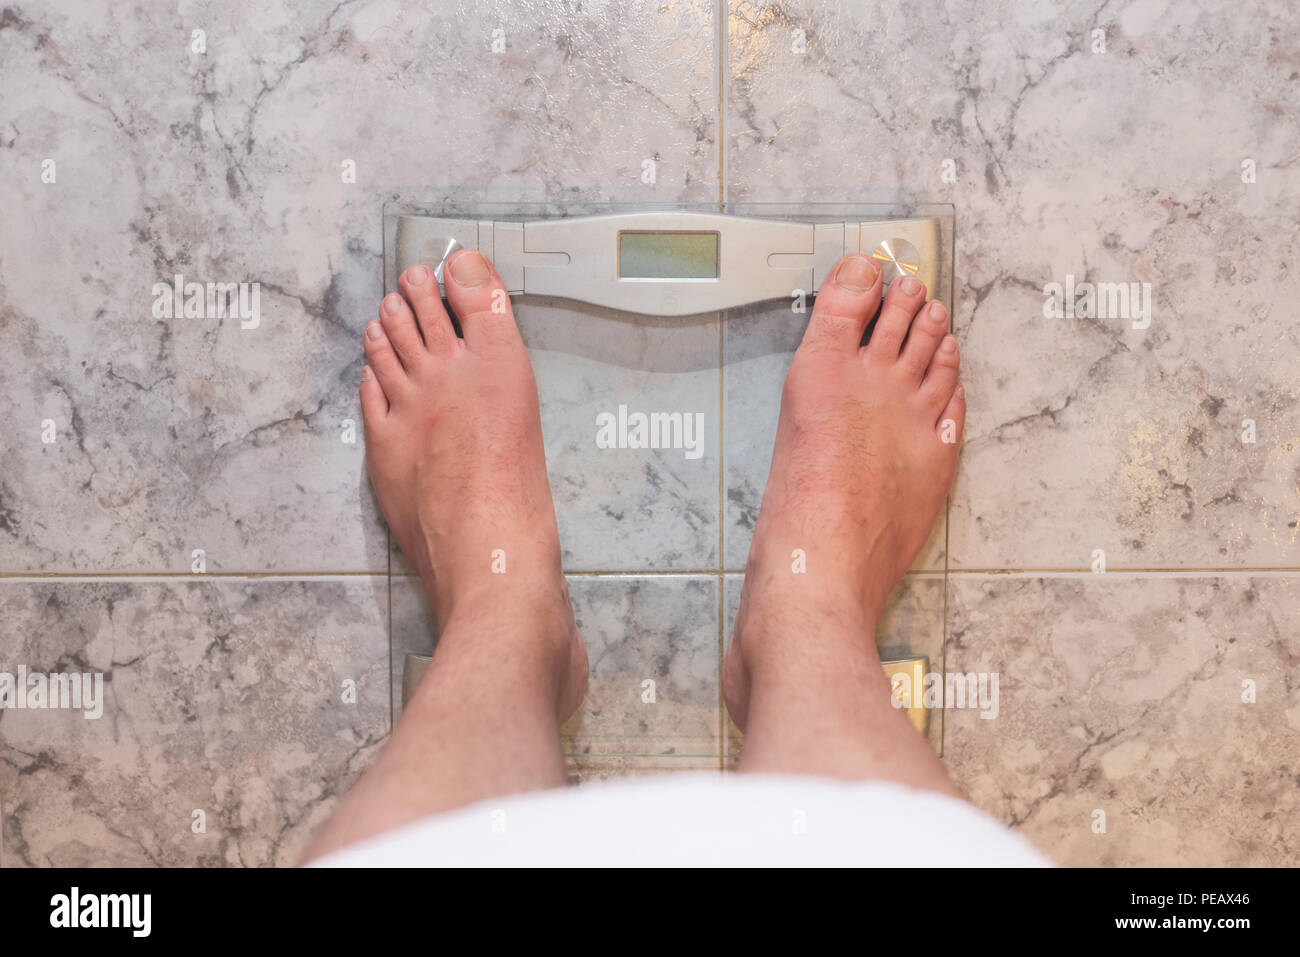 Man feet standing on weight scale - Stock Image